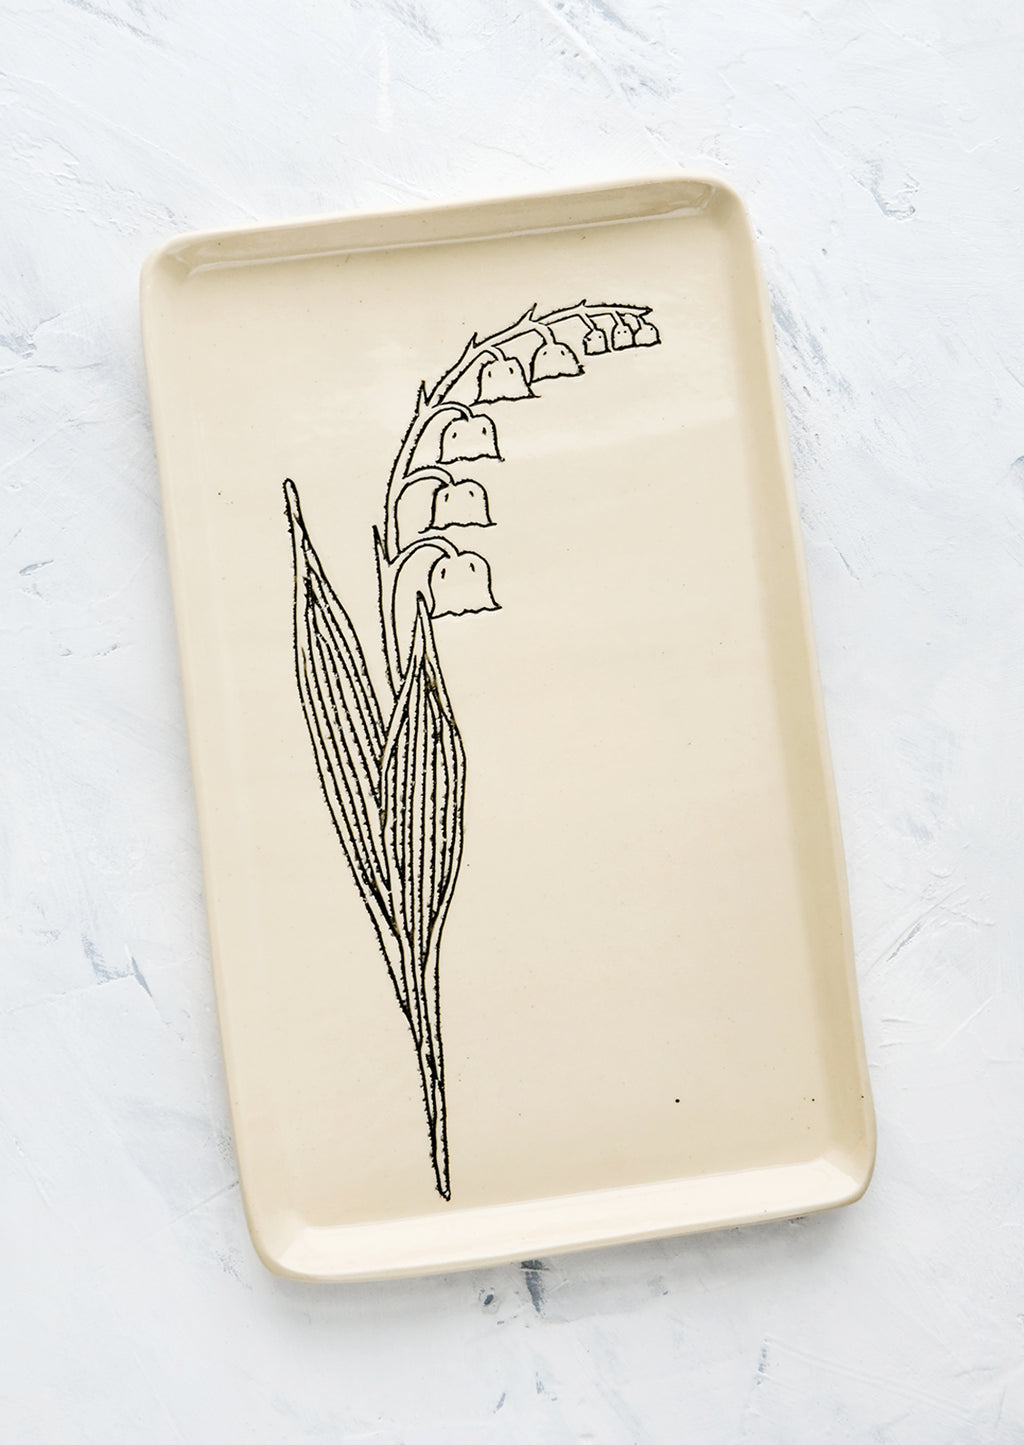 Lily of the Valley: A rectangular ceramic tray in natural bisque color with an etched black drawing of Lily Of the Valley flower.